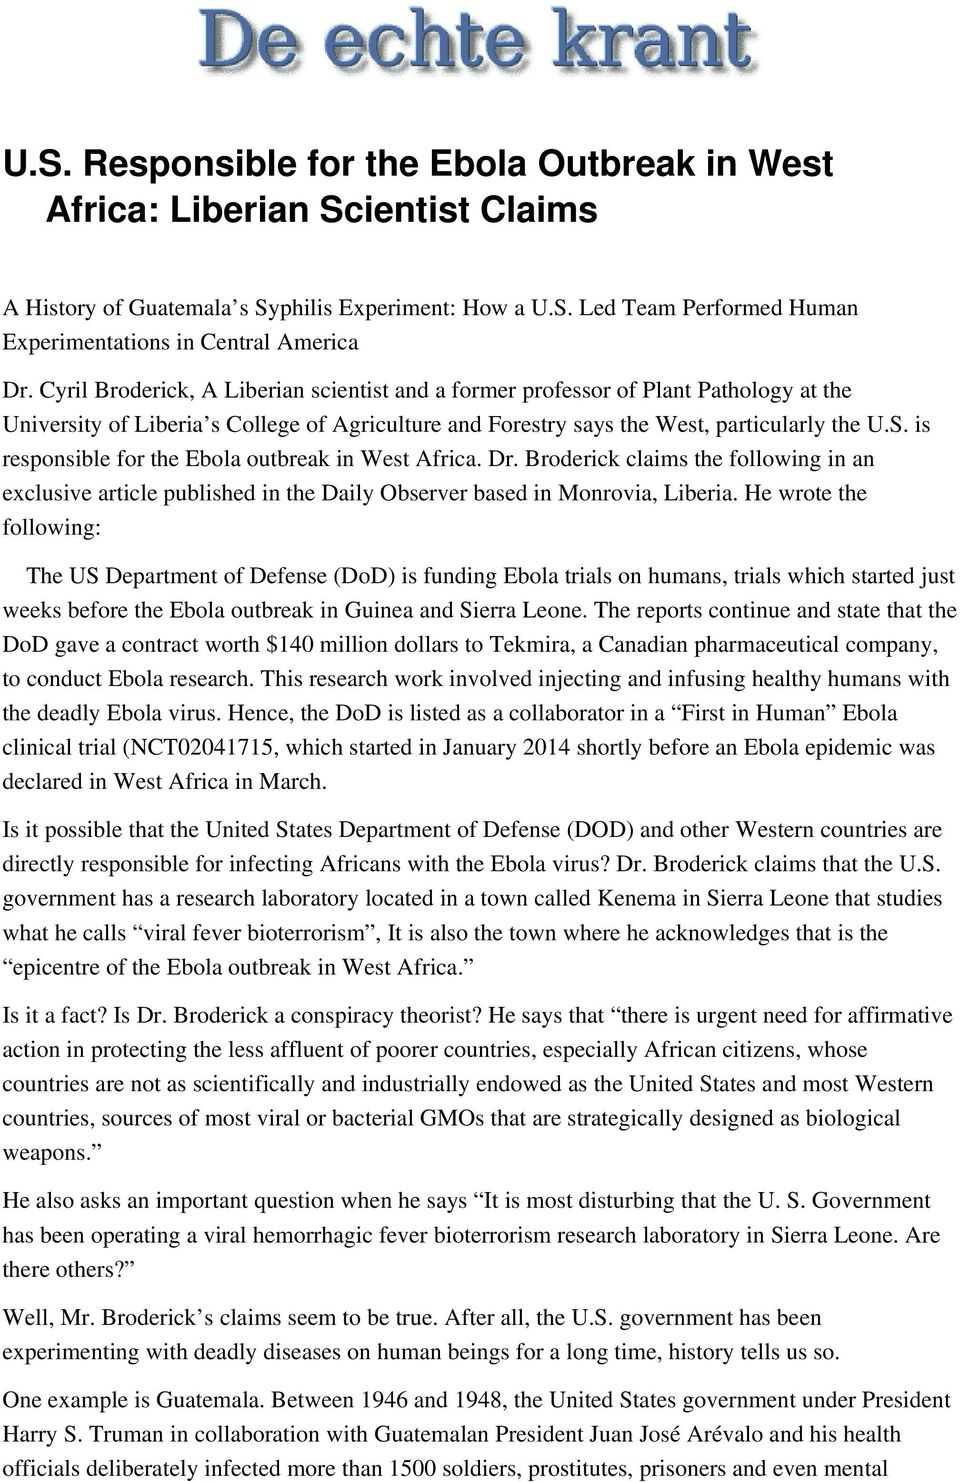 is responsible for the Ebola outbreak in West Africa. Dr. Broderick claims the following in an exclusive article published in the Daily Observer based in Monrovia, Liberia.